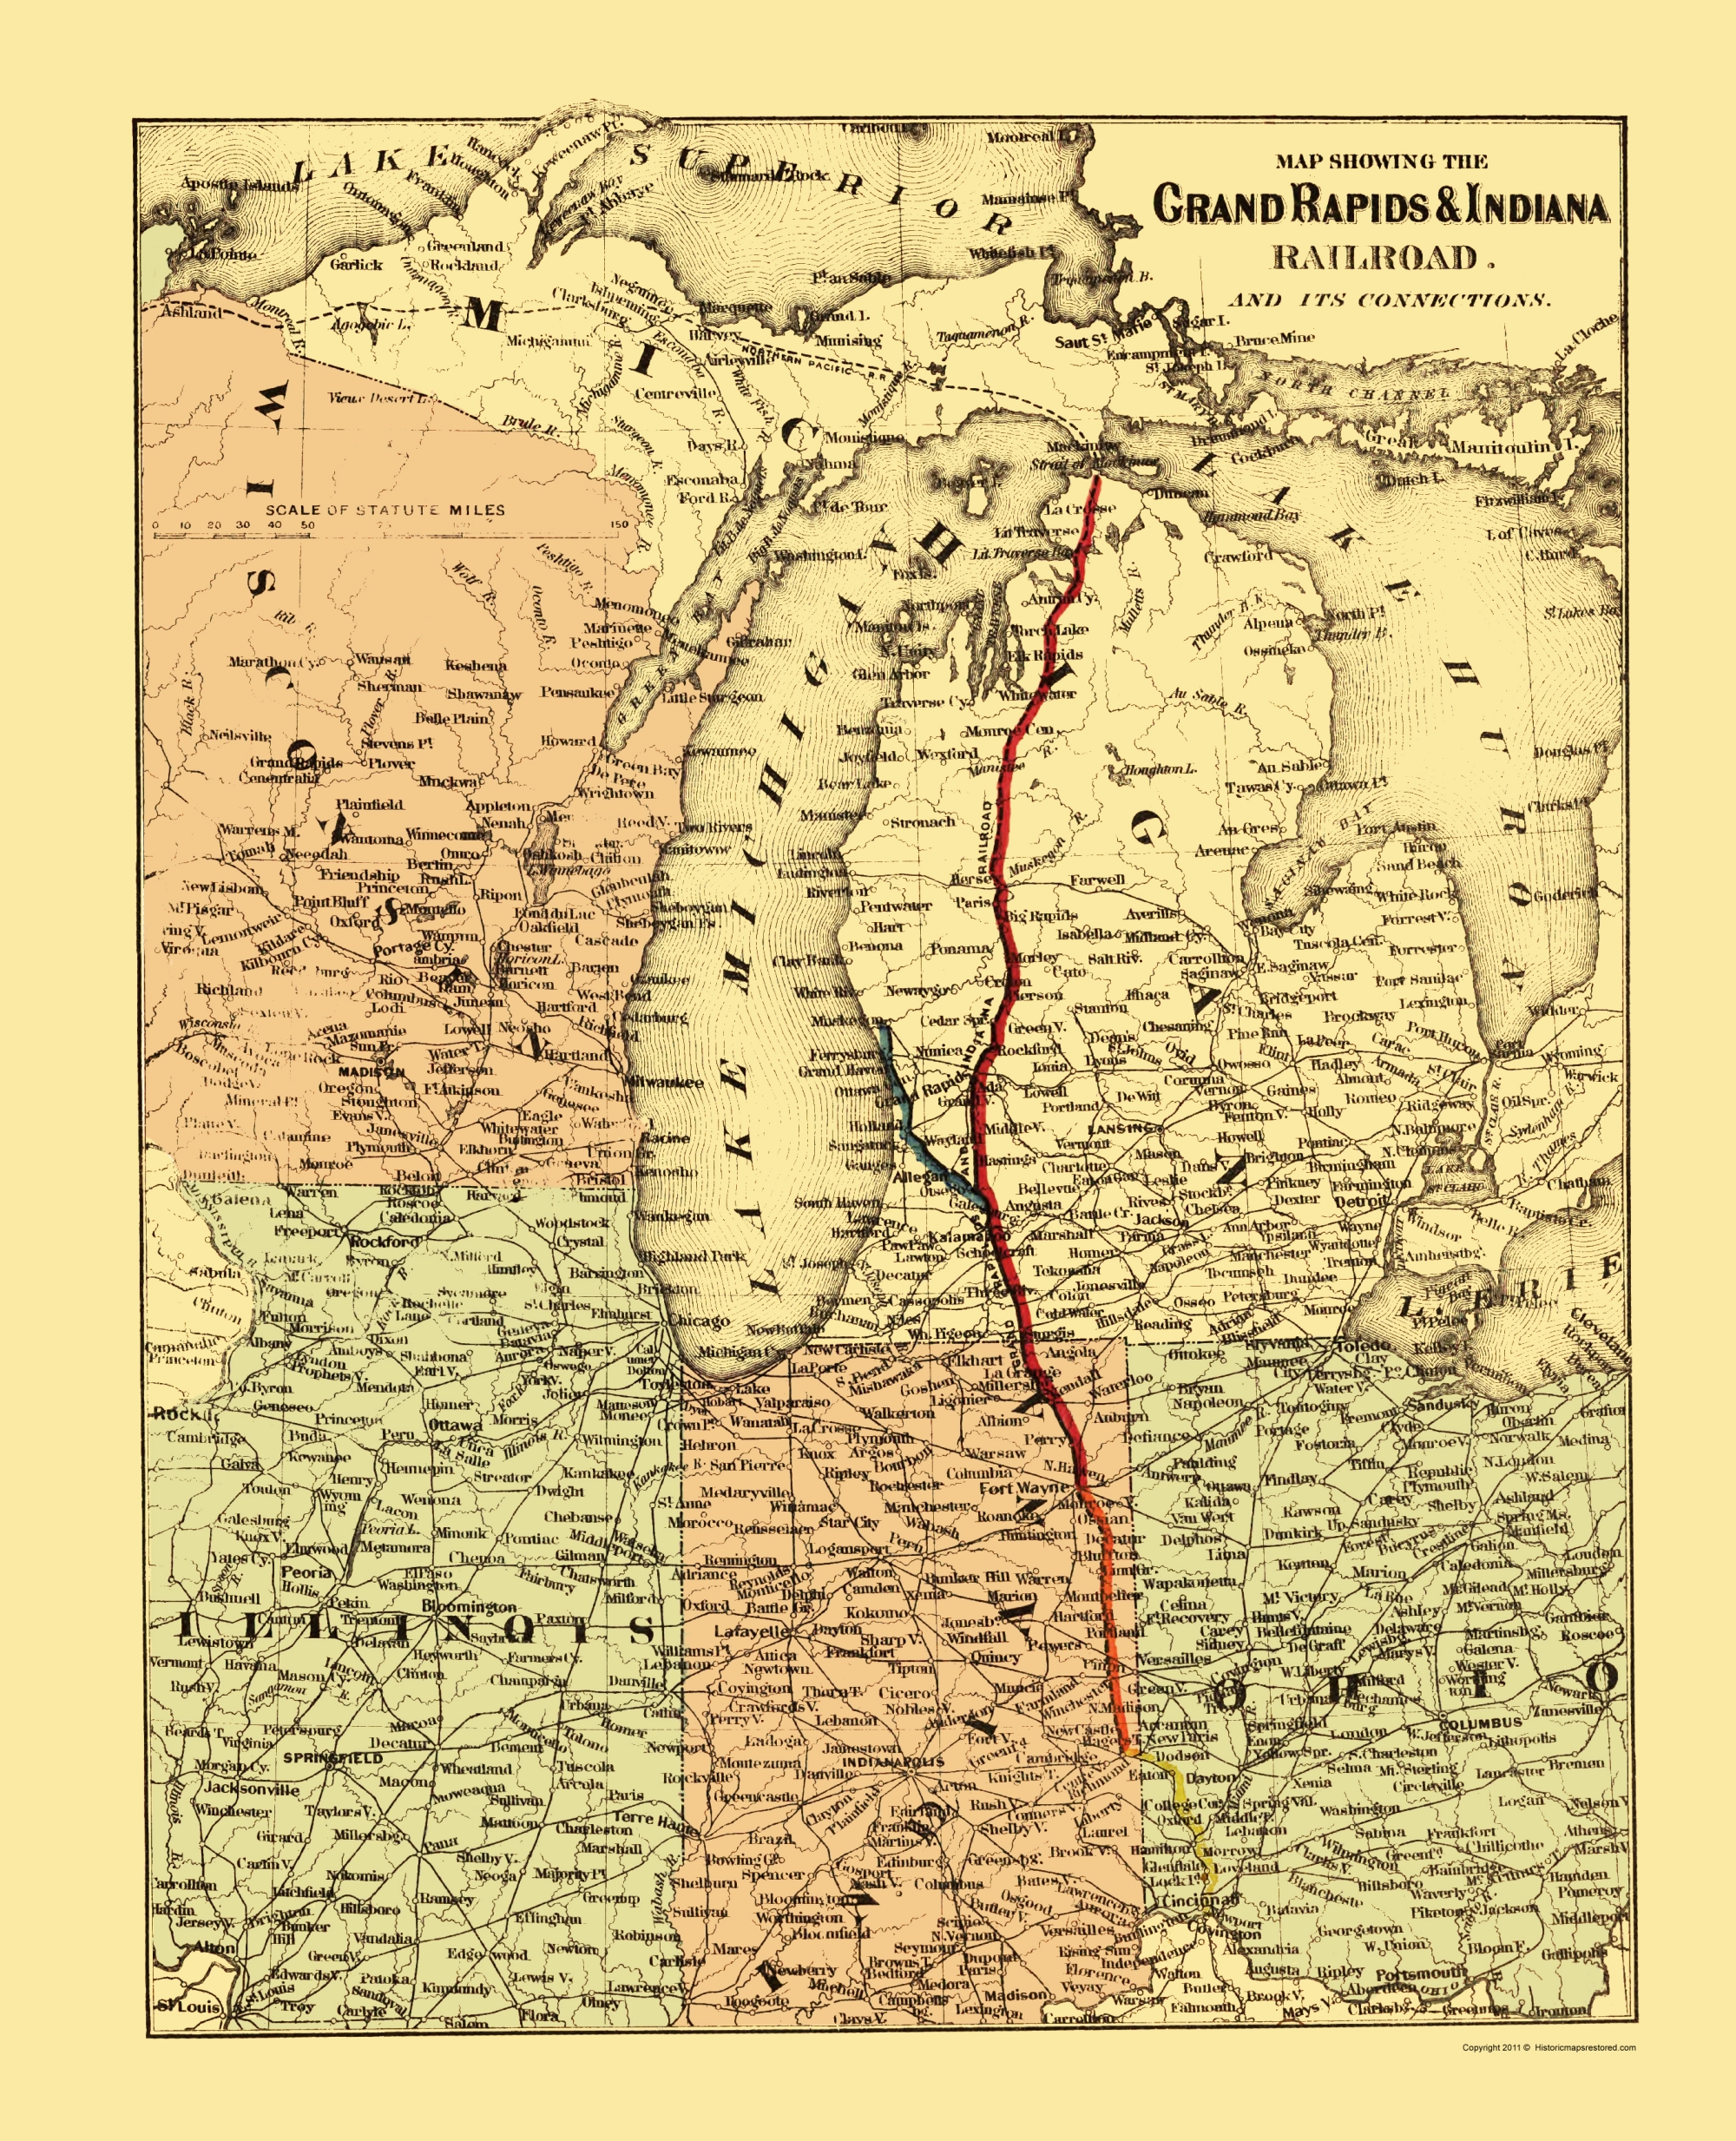 Old Railroad Map Grand Rapids and Indiana Railroad 1871